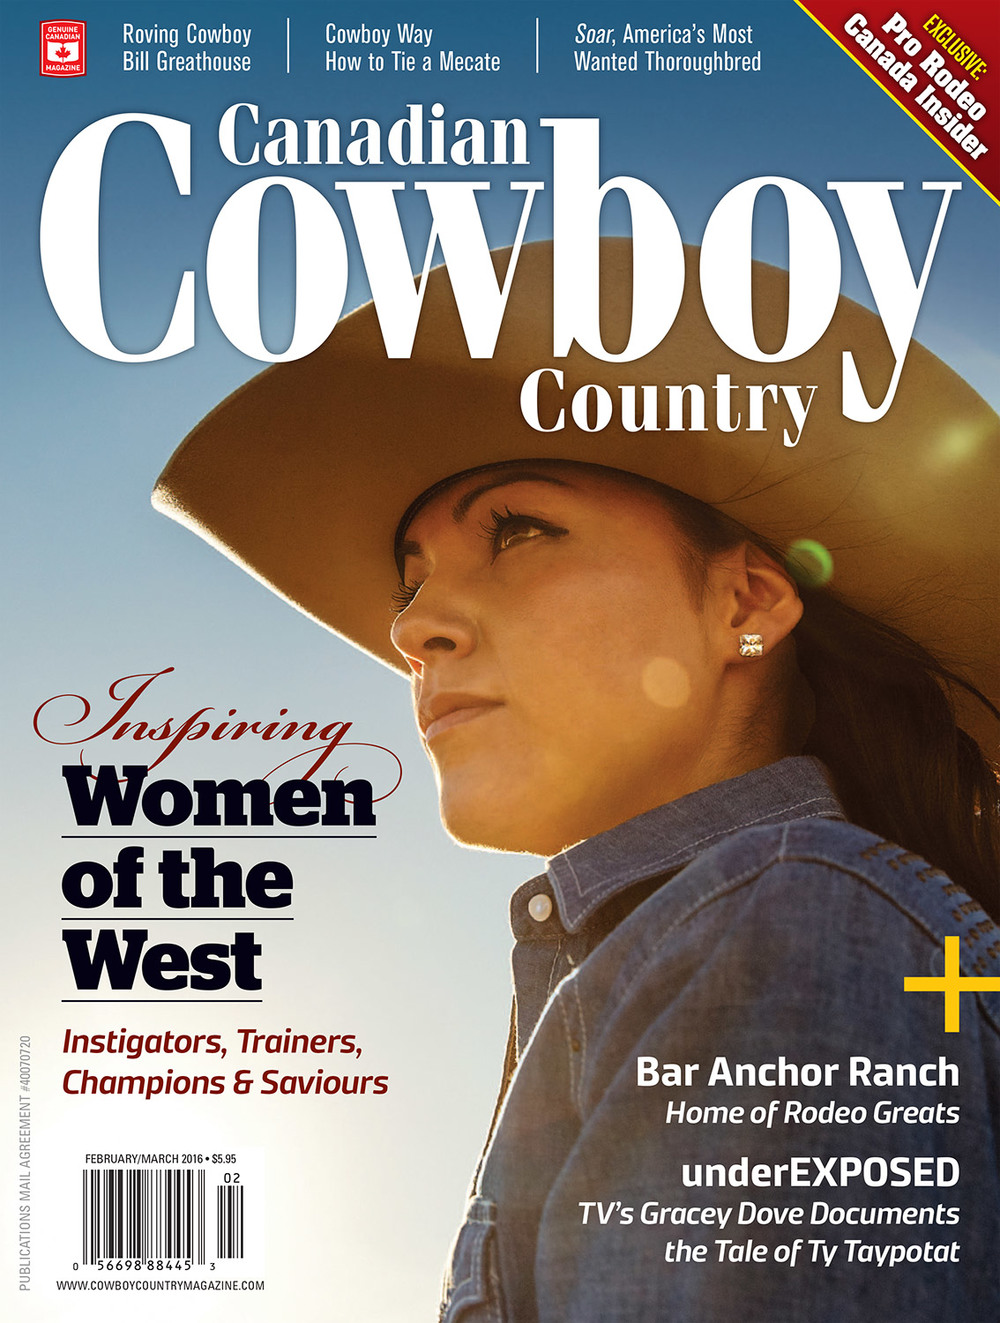 My photo of a real working cowgirl and rodeo rider appears on the cover of the February/March 2016 issue of Canadian Cowboy Country magazine.